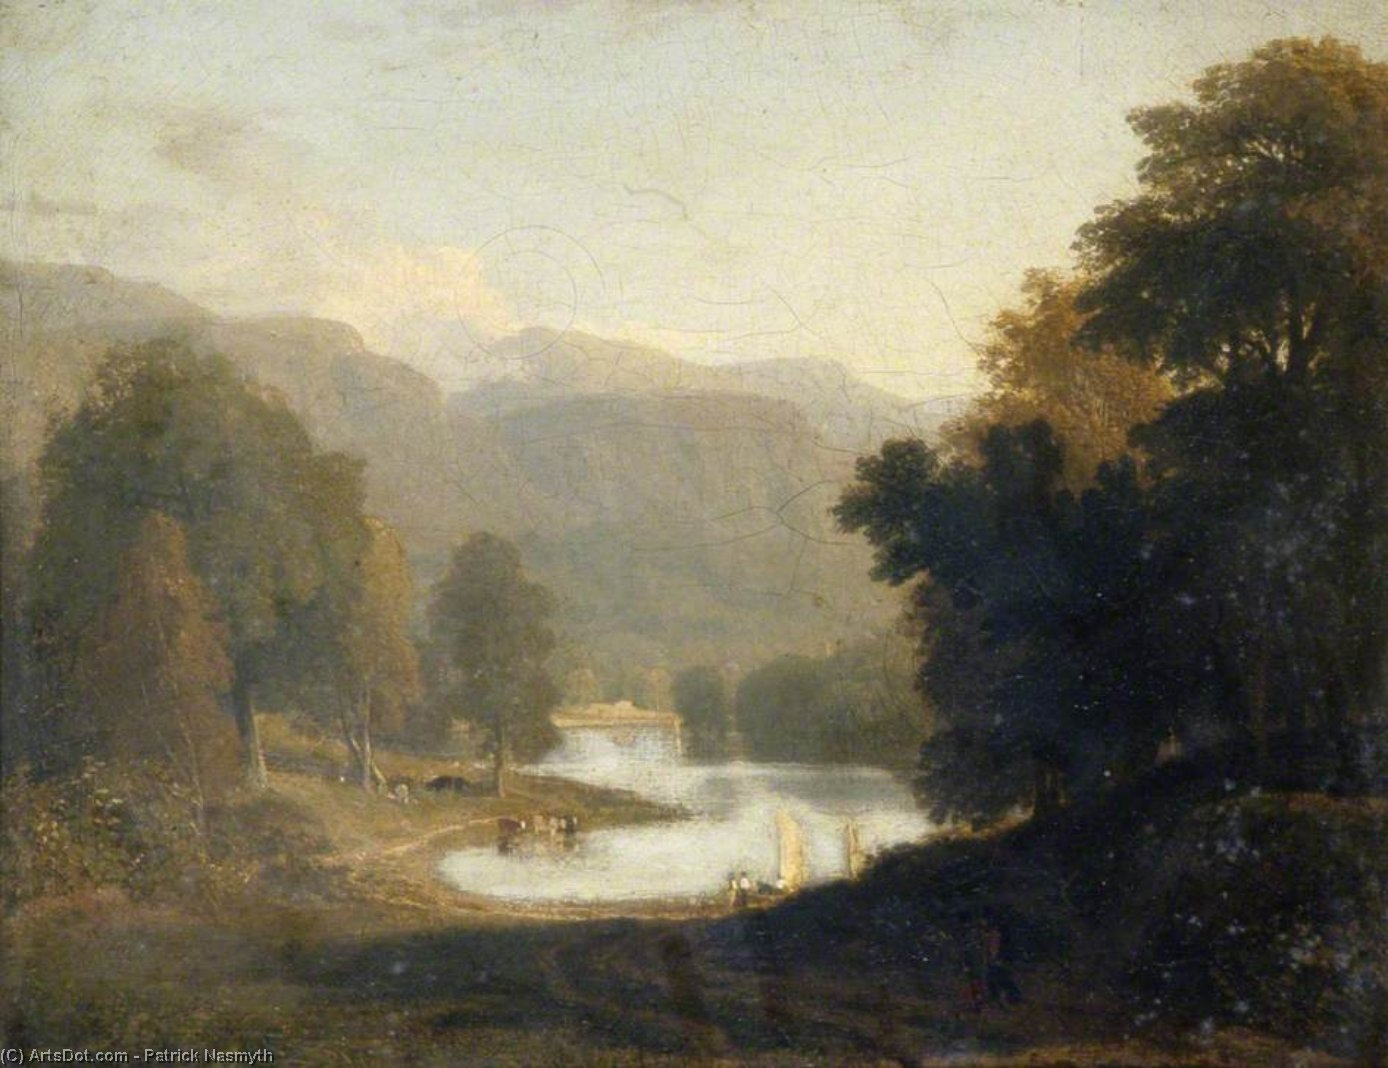 ПЕЙЗАЖ -   по Patrick Nasmyth (1787-1831, United Kingdom)